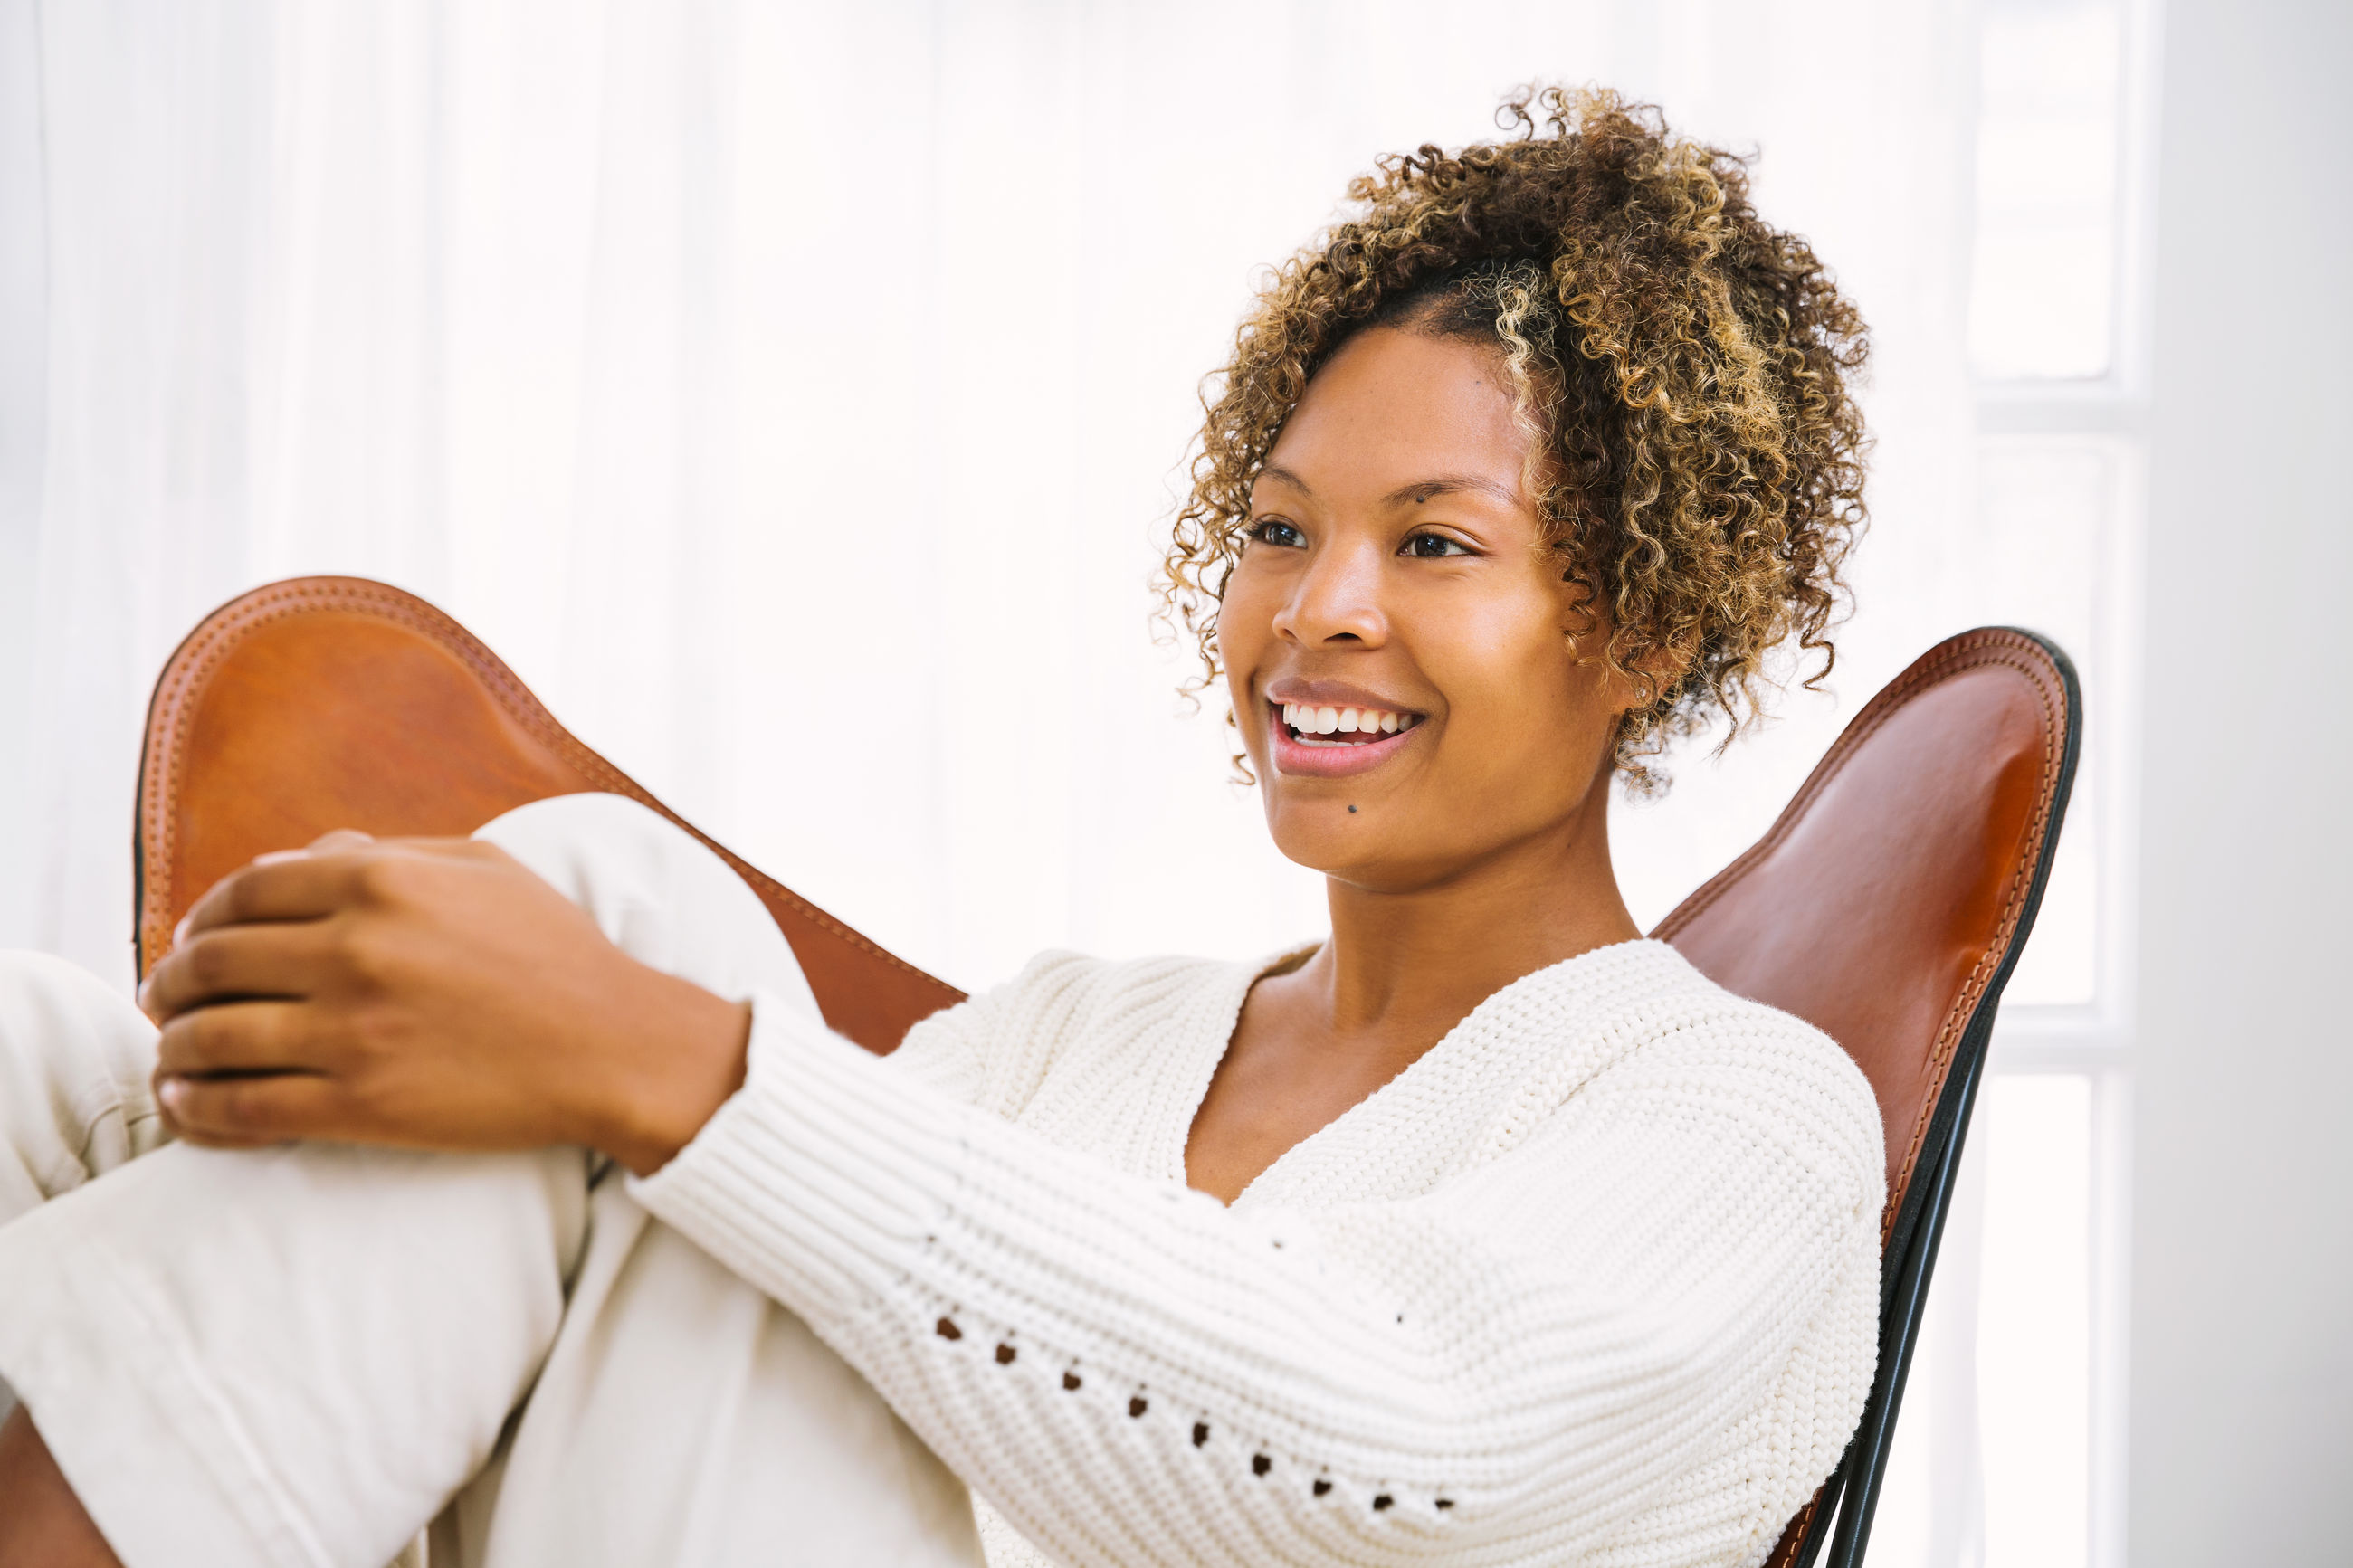 Smiling young woman sitting on chair at home